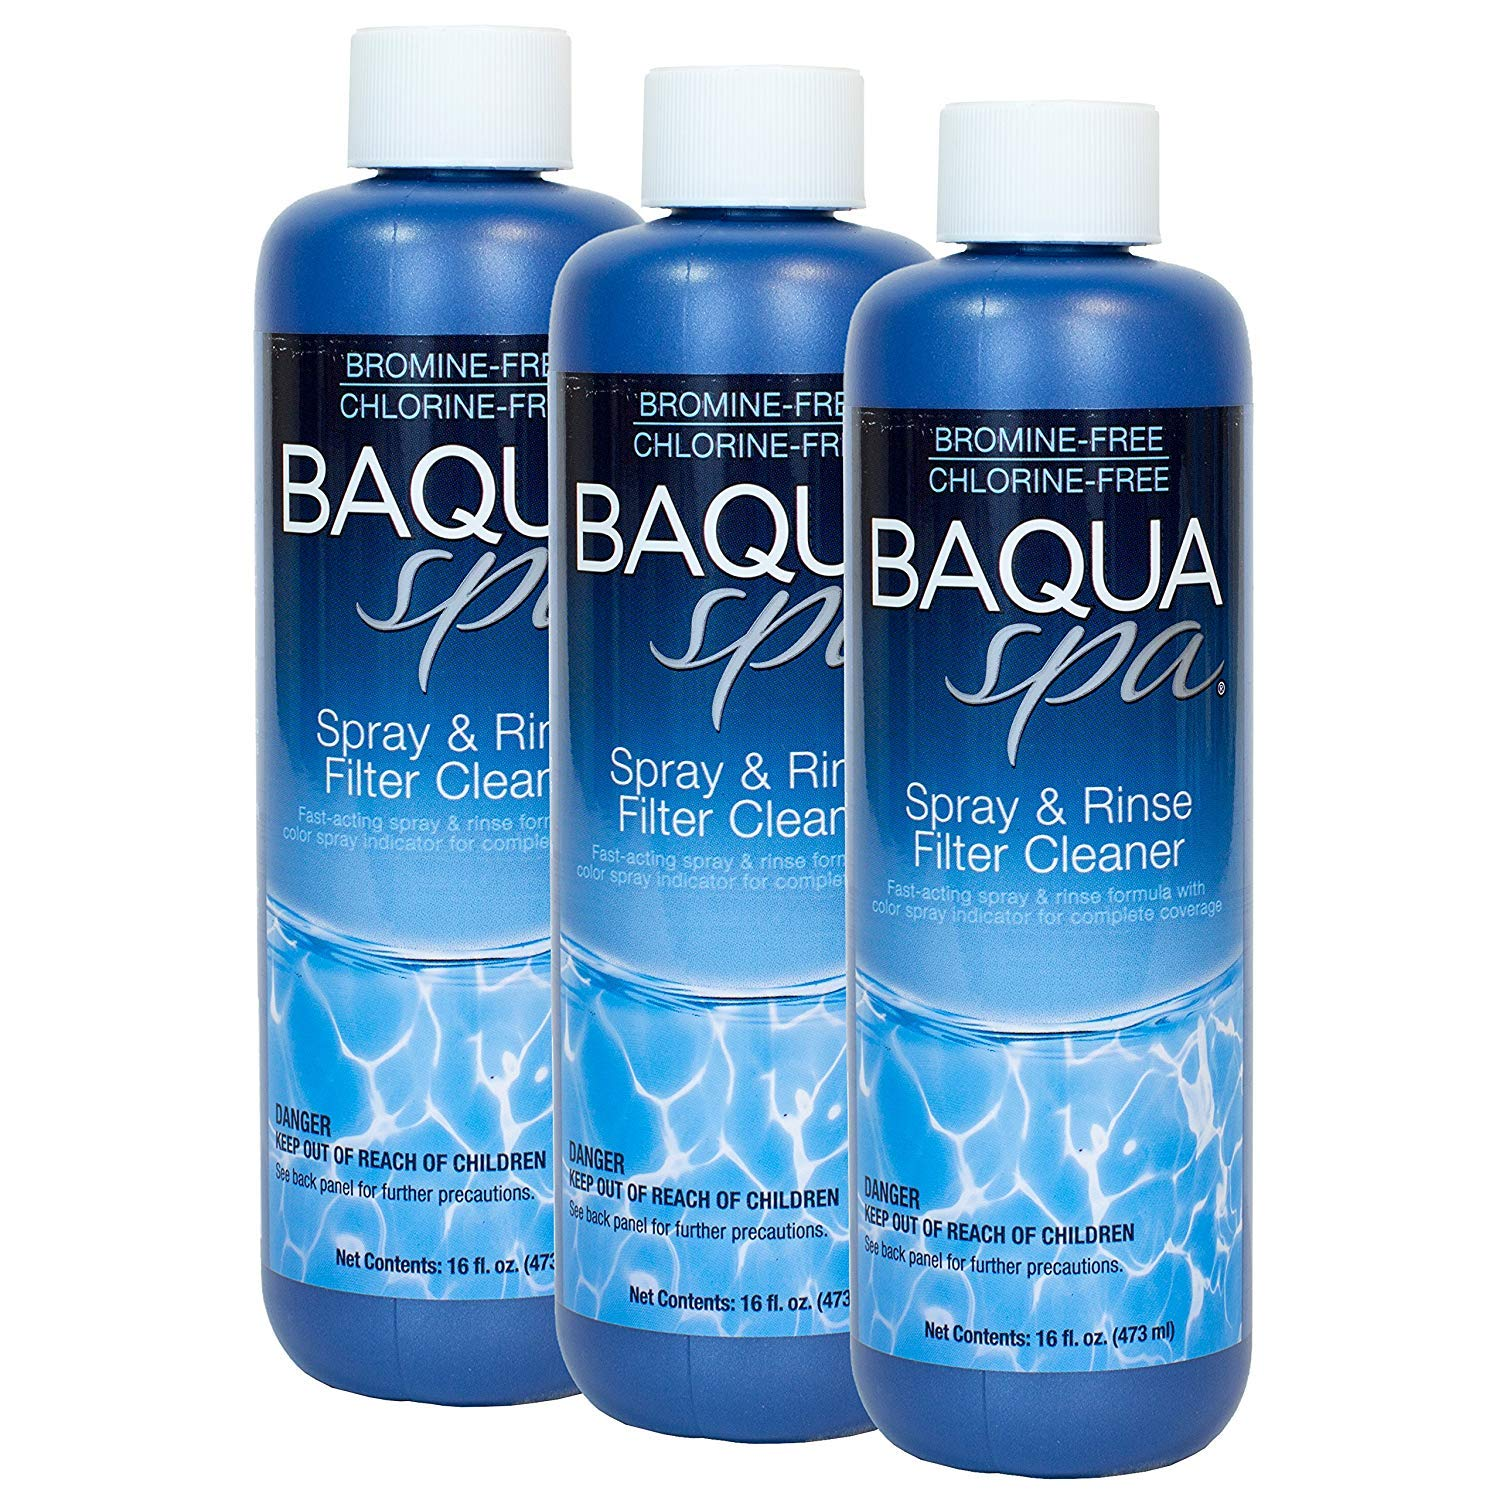 Baqua Spa Spray & Rinse Filter Cleaner (1 pt) (3 Pack) by Baqua Spa